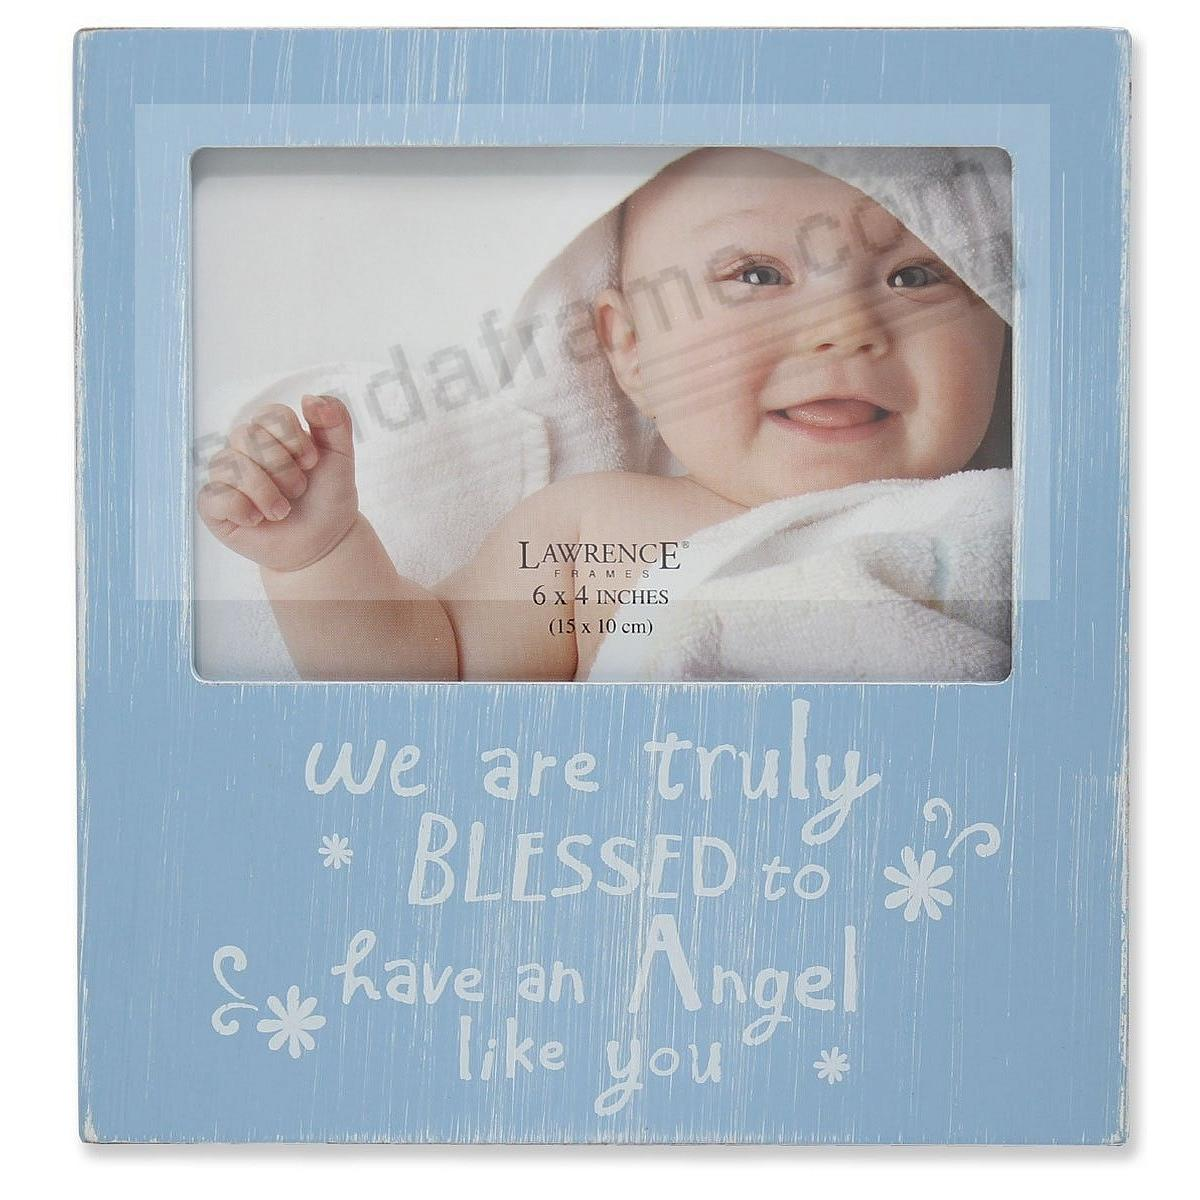 WE ARE TRULY BLESSED... Baby Blue 6x4 frame by Lawrence®